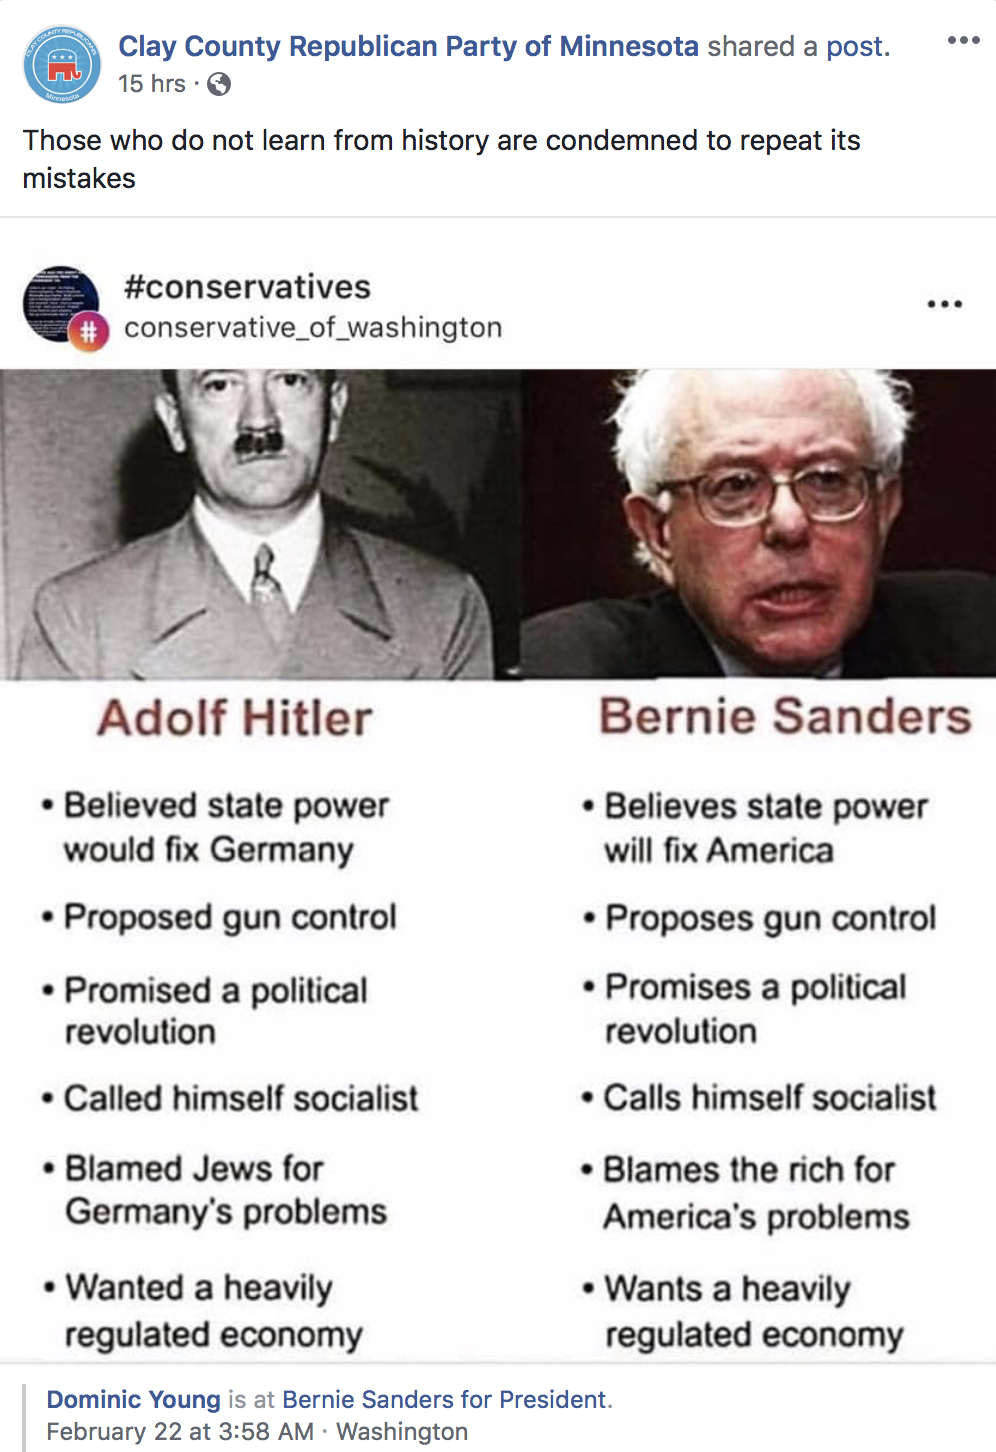 The Clay County Republican Party of Minnesota shared a post comparing Sen. Bernie Sanders to Hitler (2/25/2019)